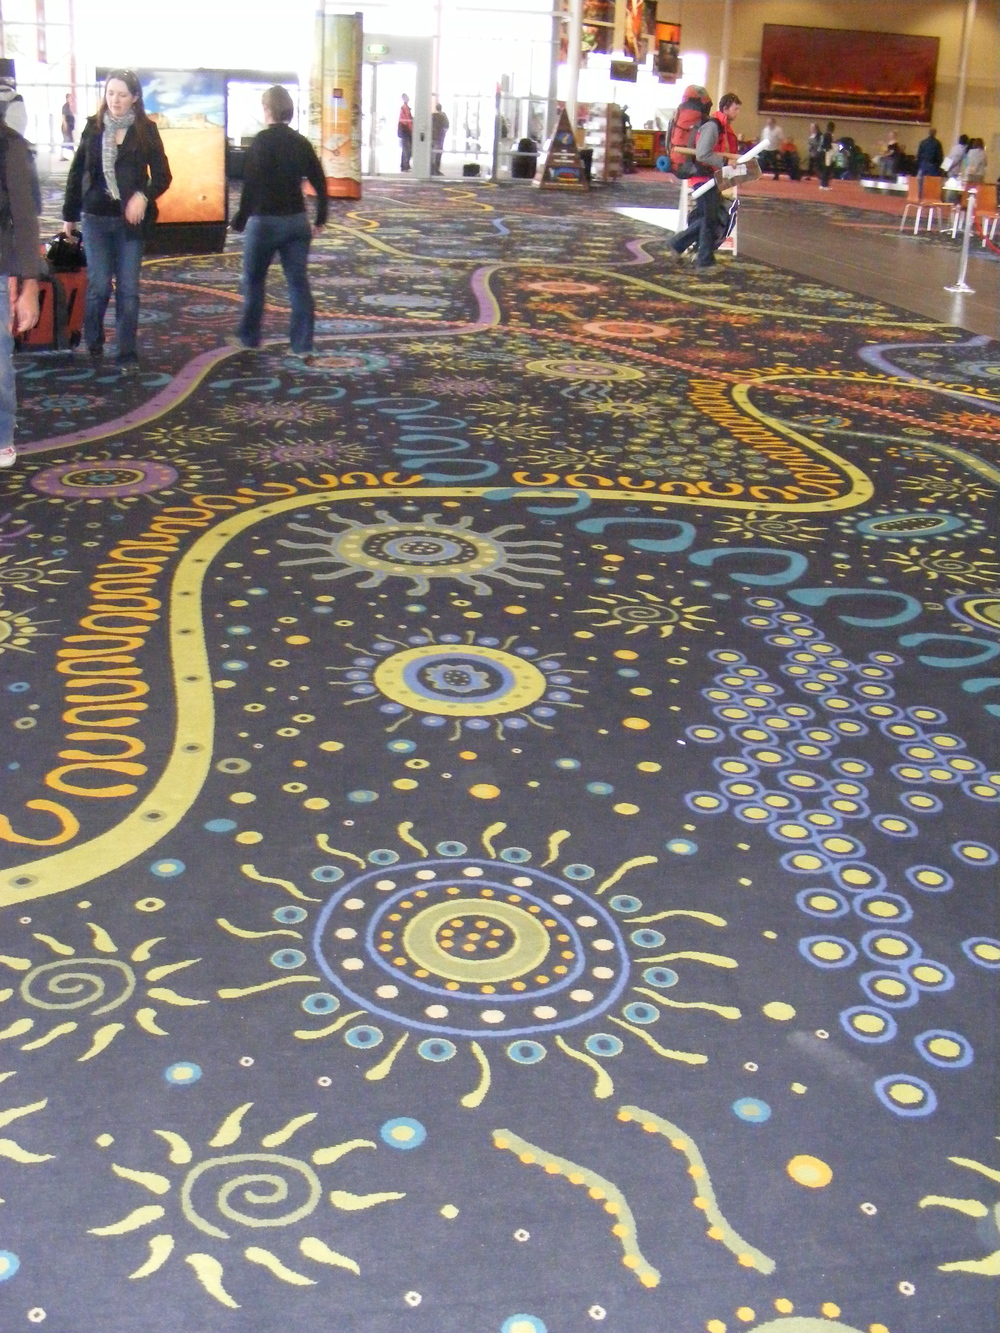 Carpet at the airport